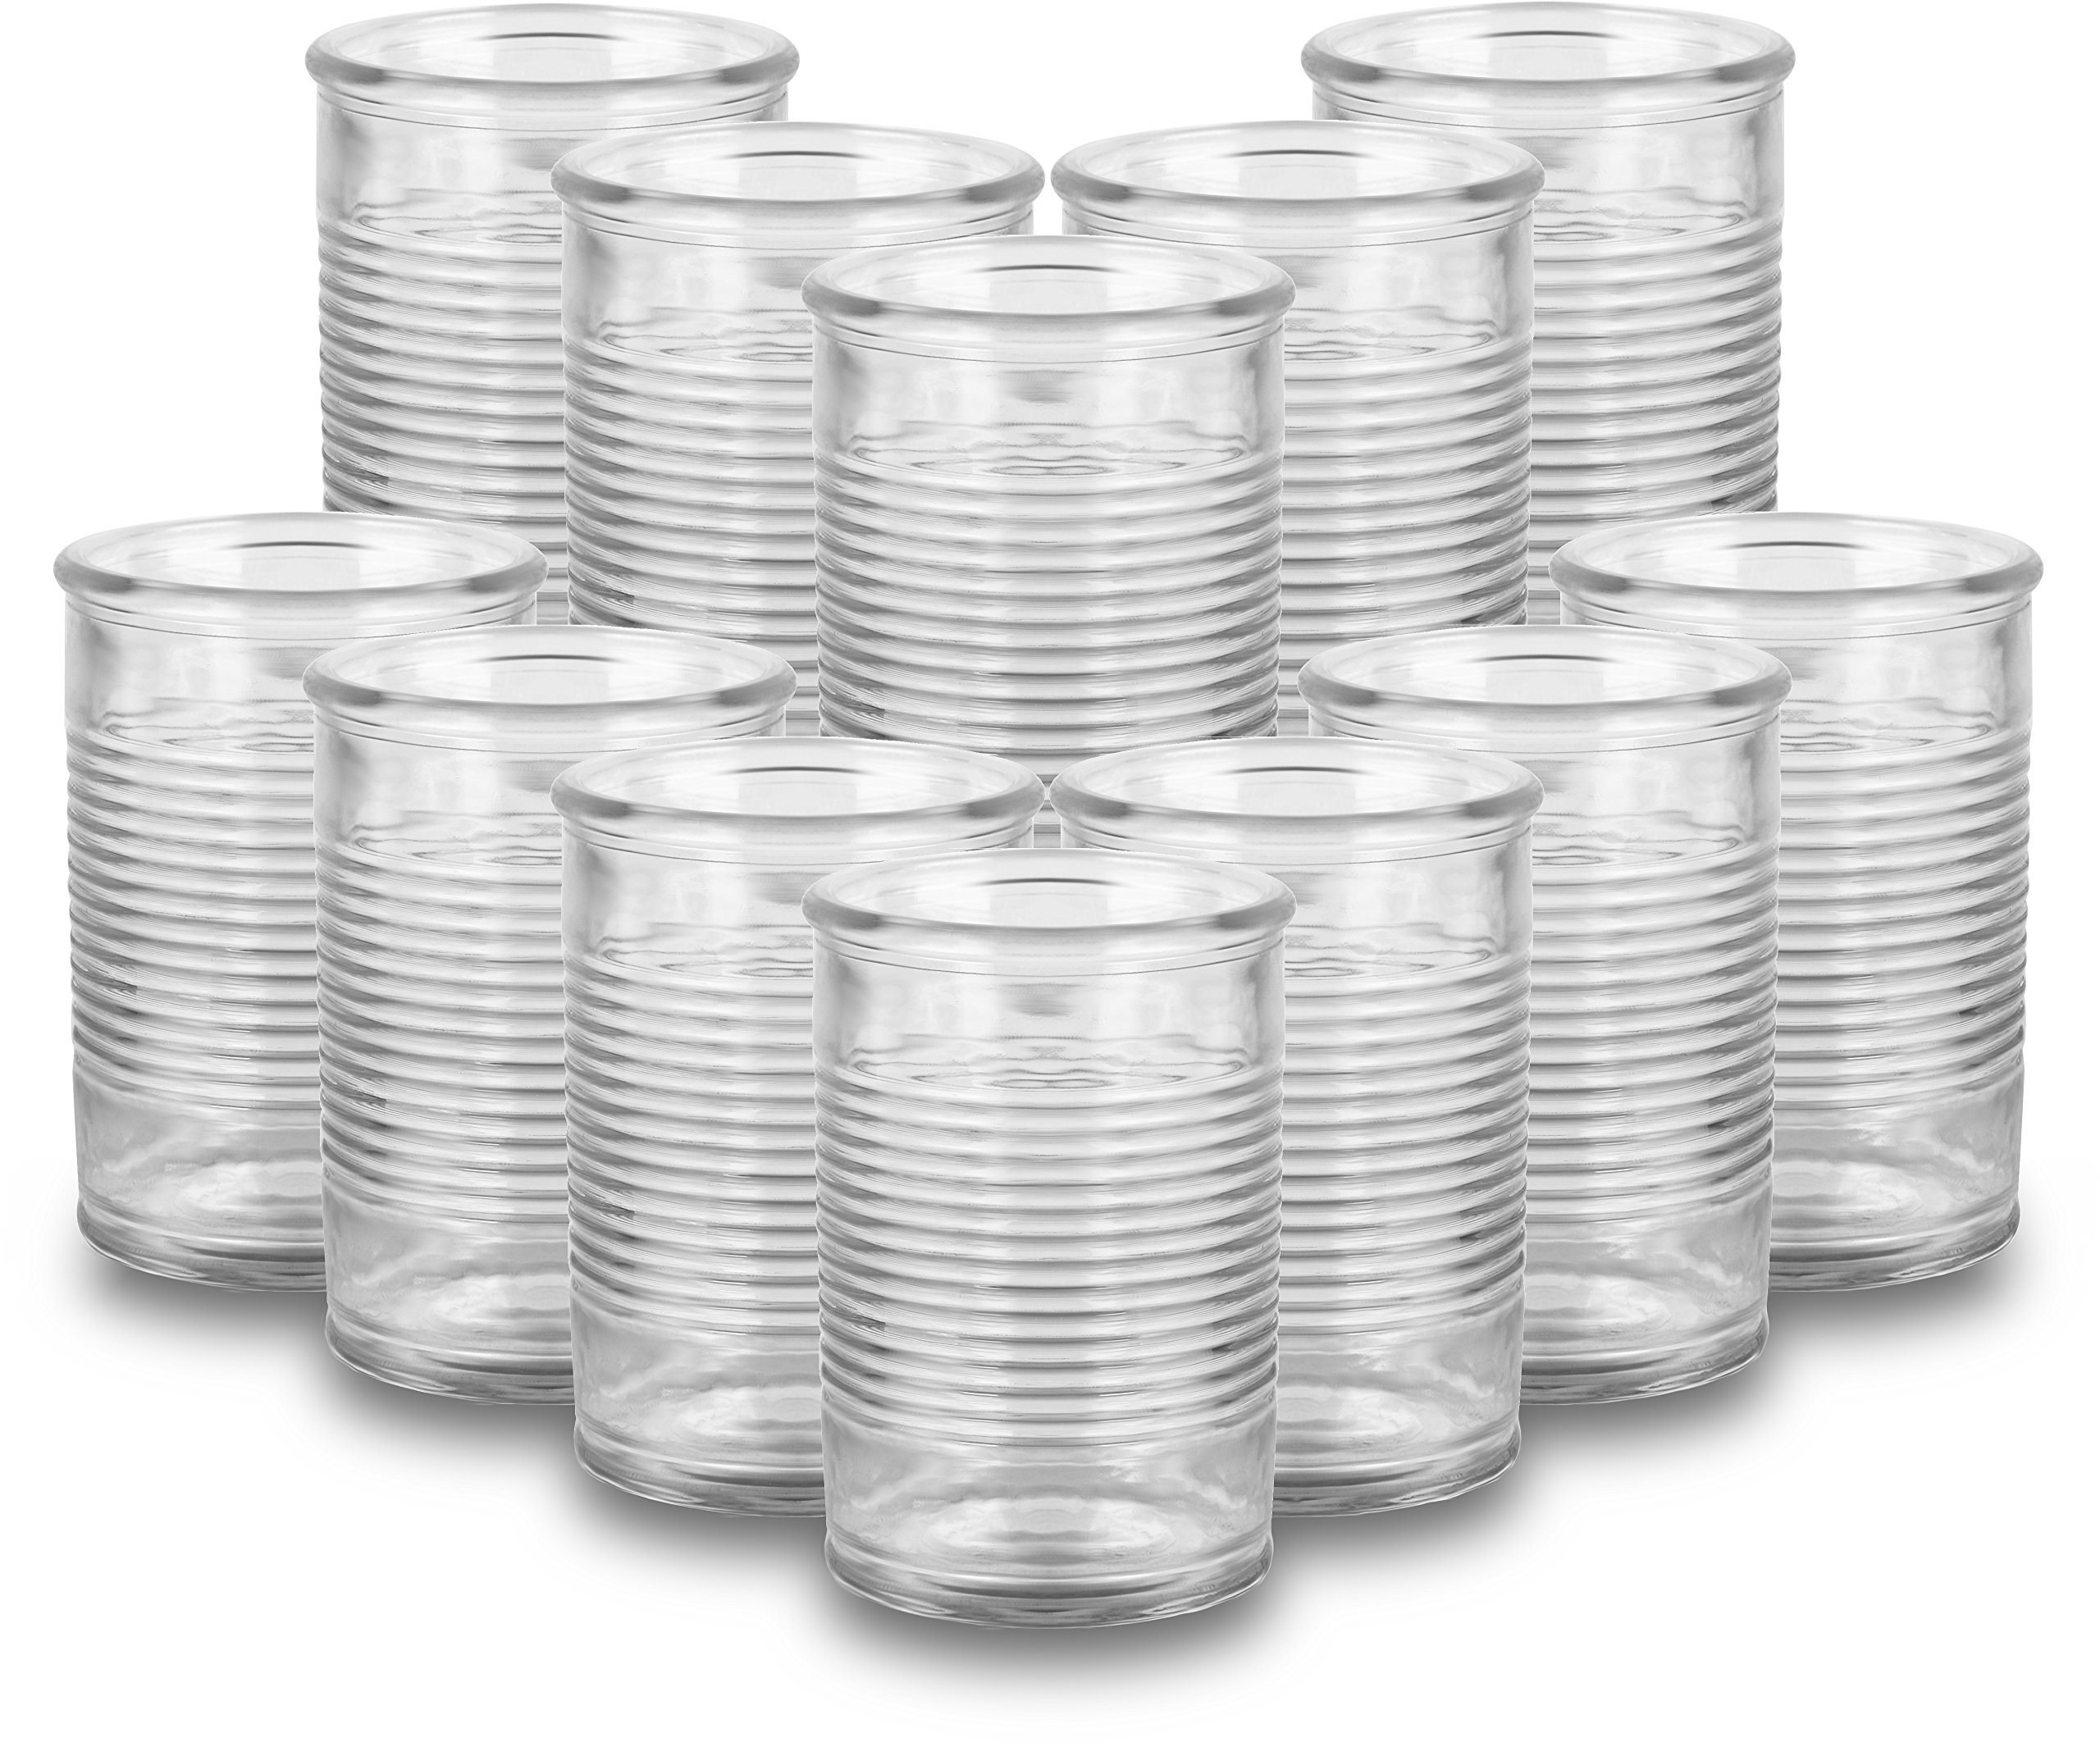 Circleware 08960 Huge Set of 12 Mason Jars in Fun Can Shaped Glasses, Home and Kitchen Farmhouse Glassware Décor Drink Tumblers for Water, Beer, Whiskey and Cold Beverages, 16 oz, Funny Can-12pc